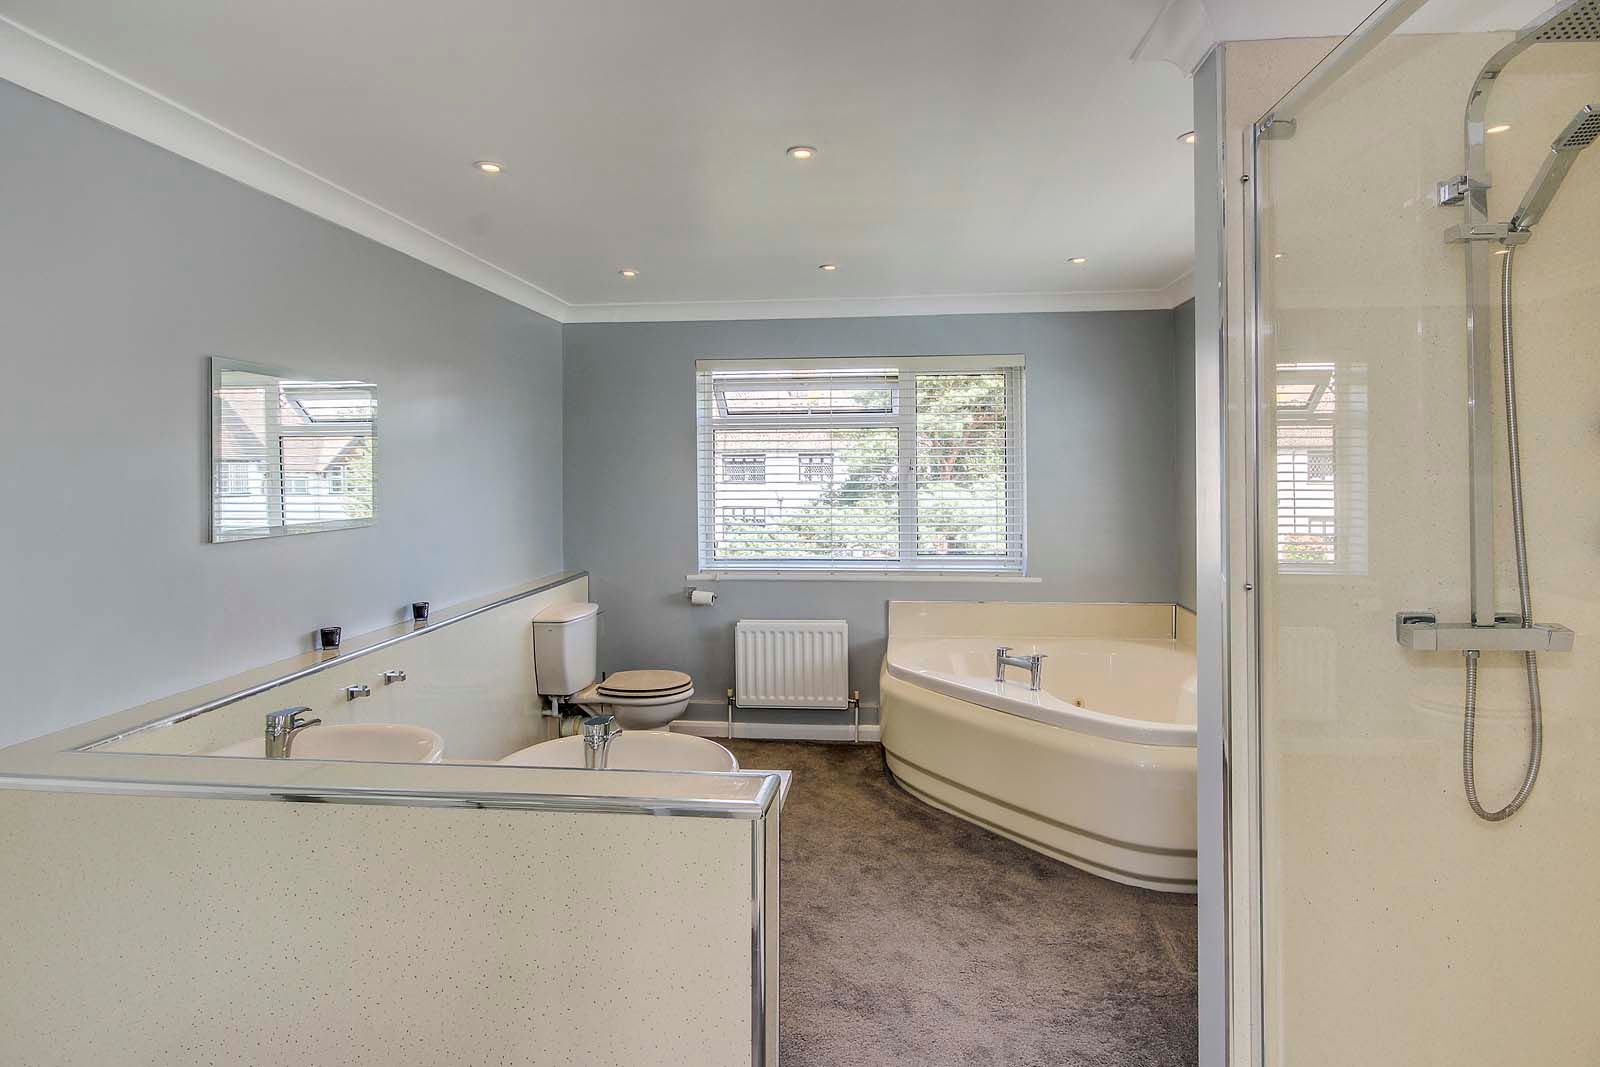 4 bed House for sale in Rustington - En-suite (Property Image 10)